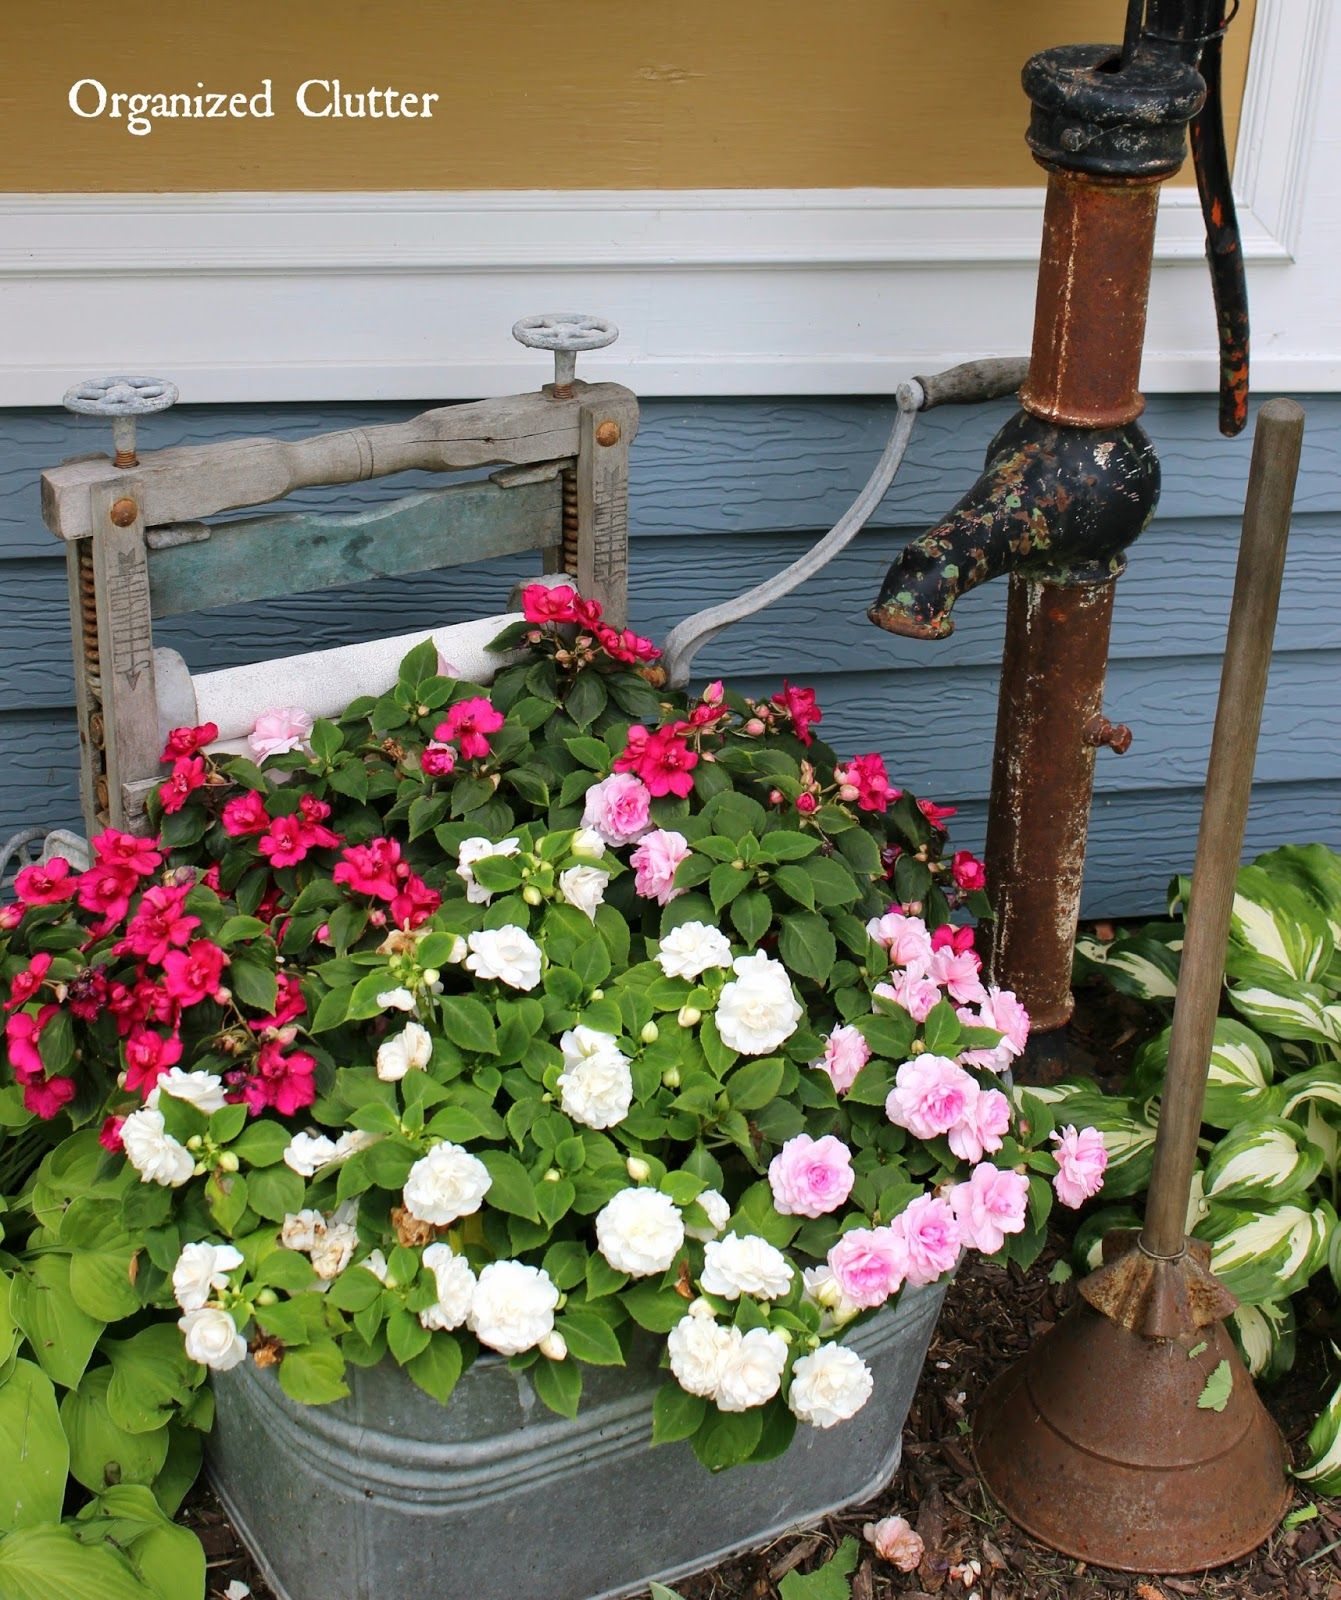 Beautiful Flowers in Junky Containers | Organized Clutter on